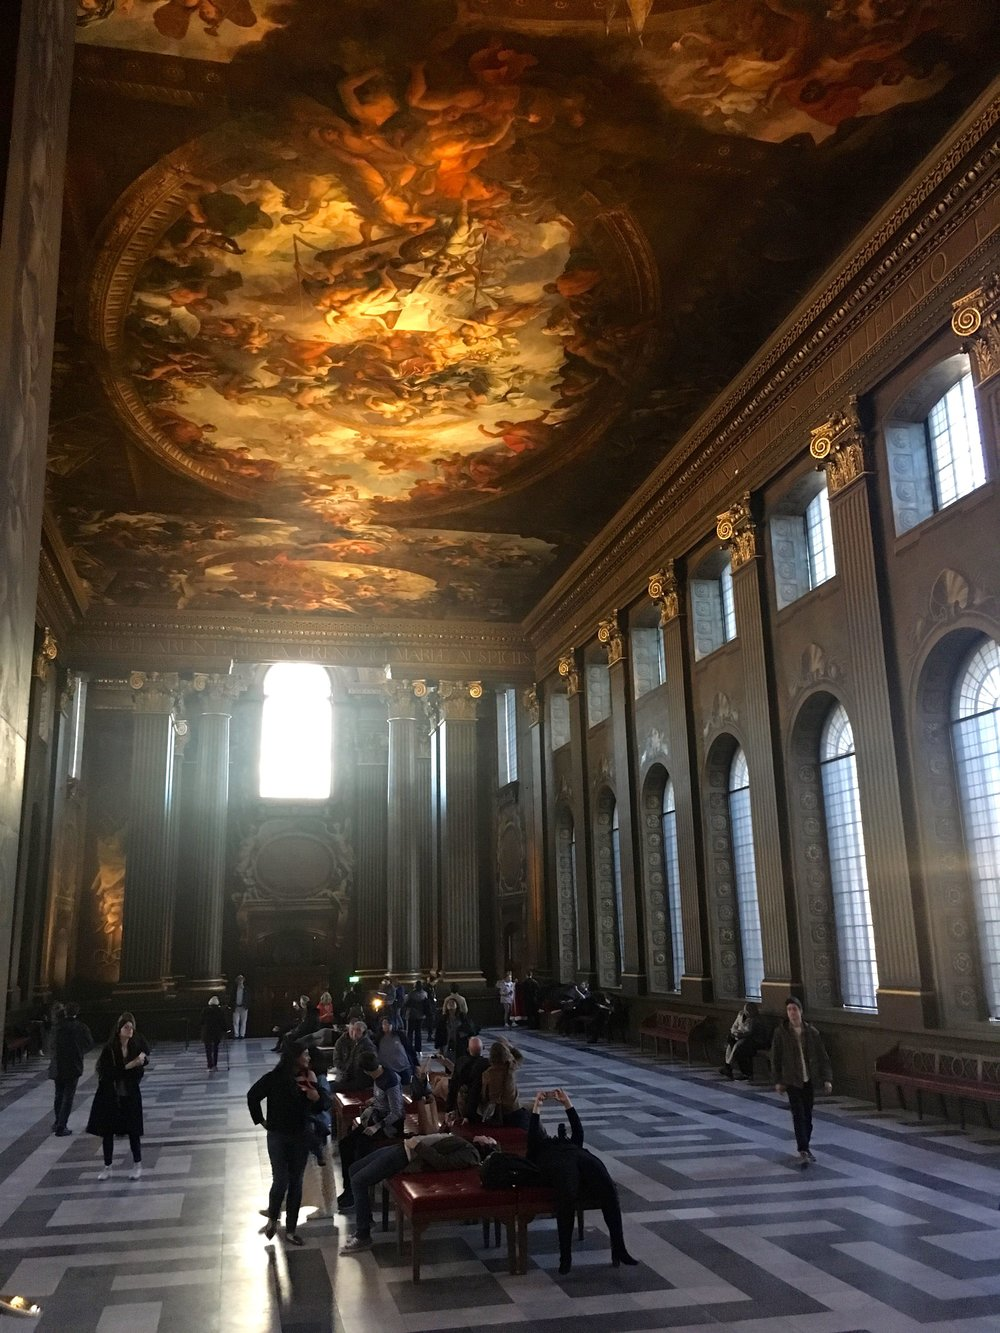 The Painted Hall at the Old Royal Naval College in Greenwich